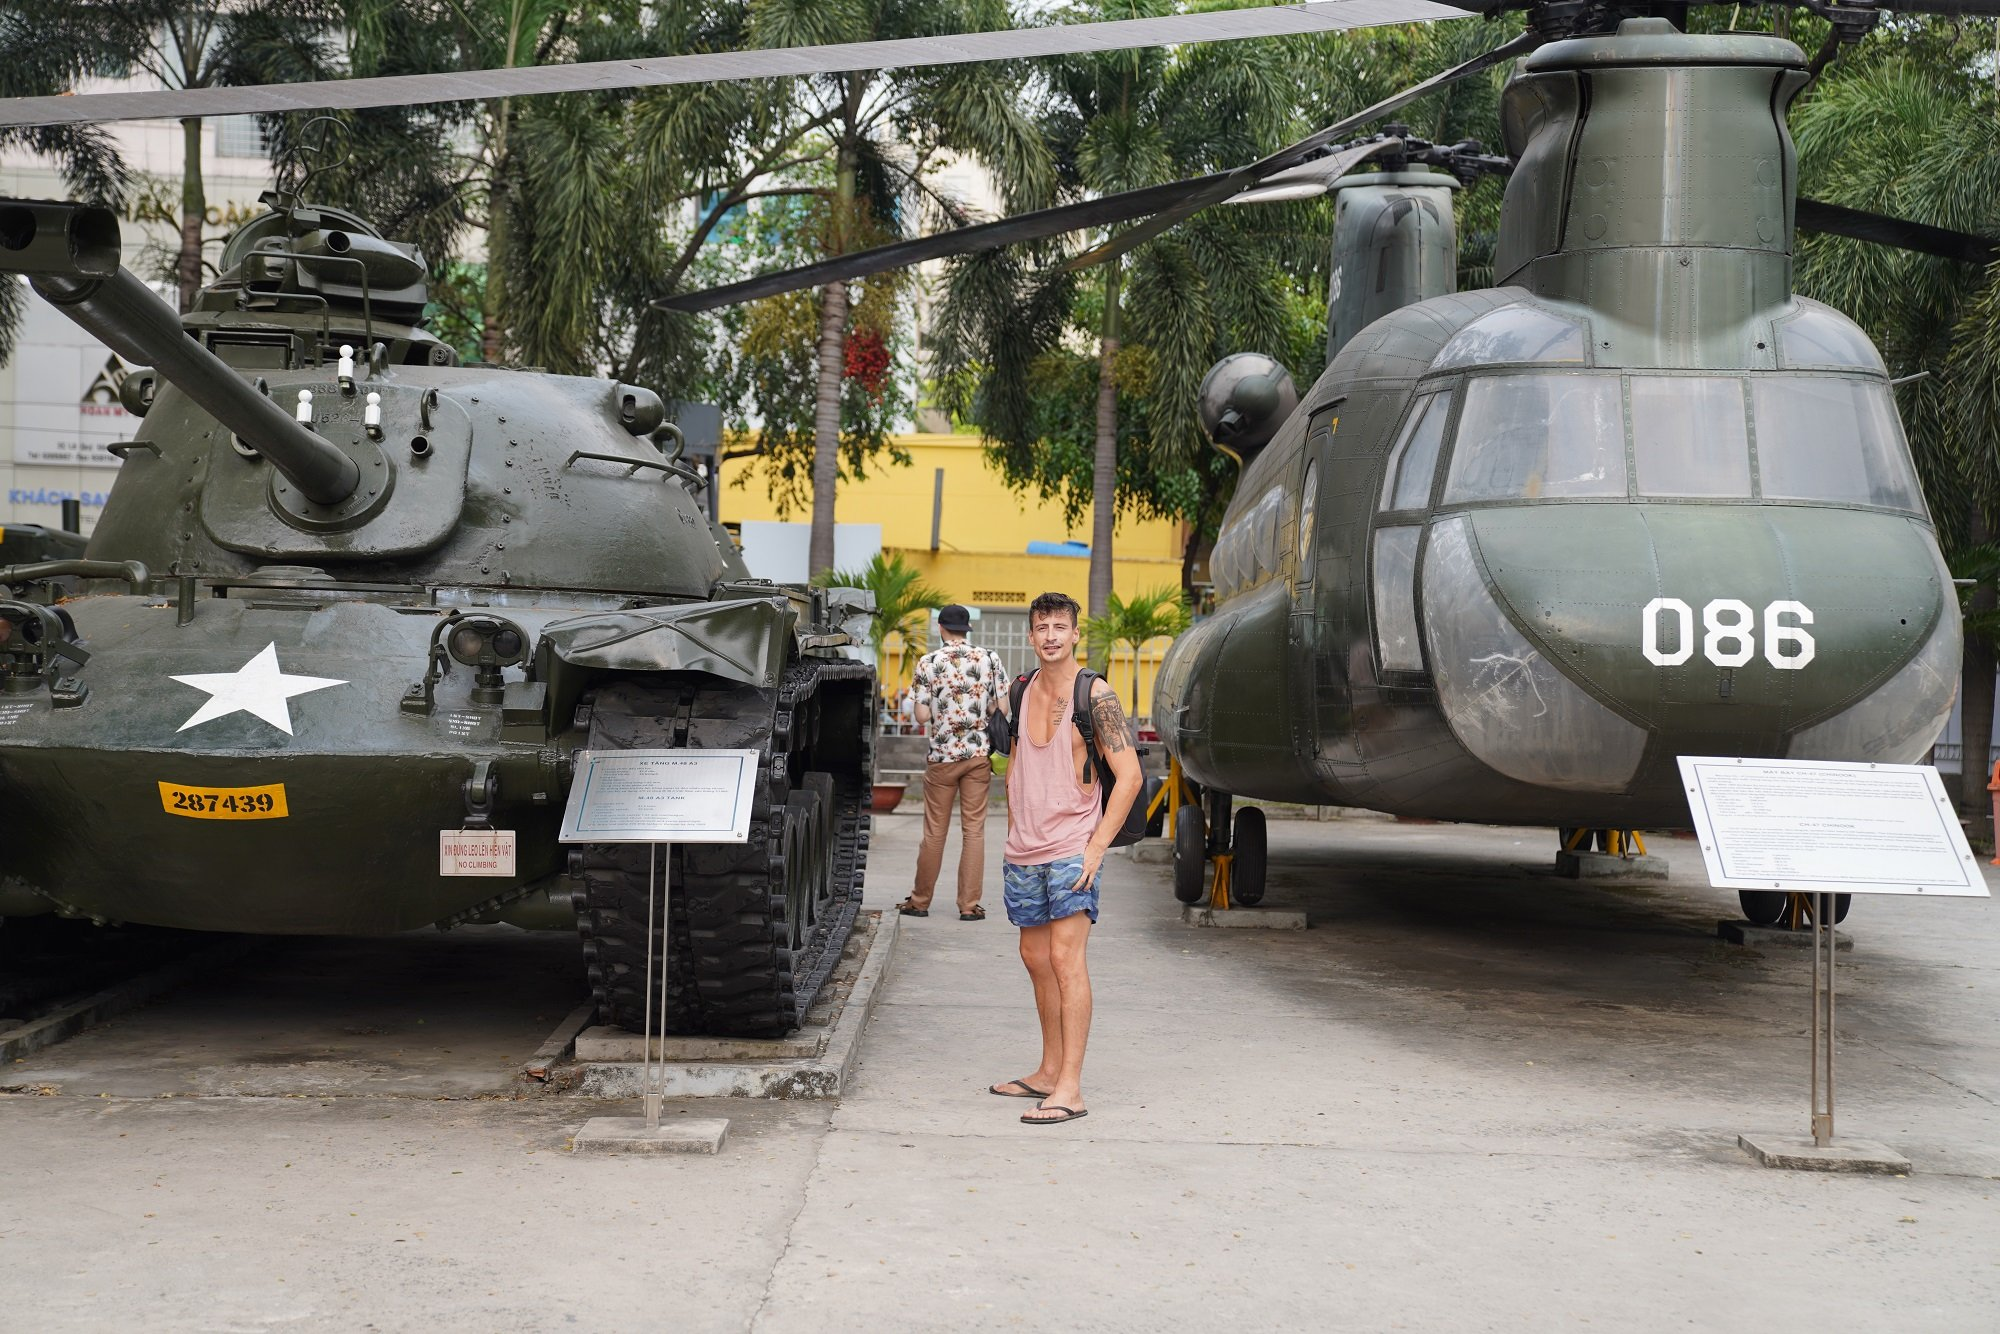 Catalin at the War Remnants Museum in Vietnam